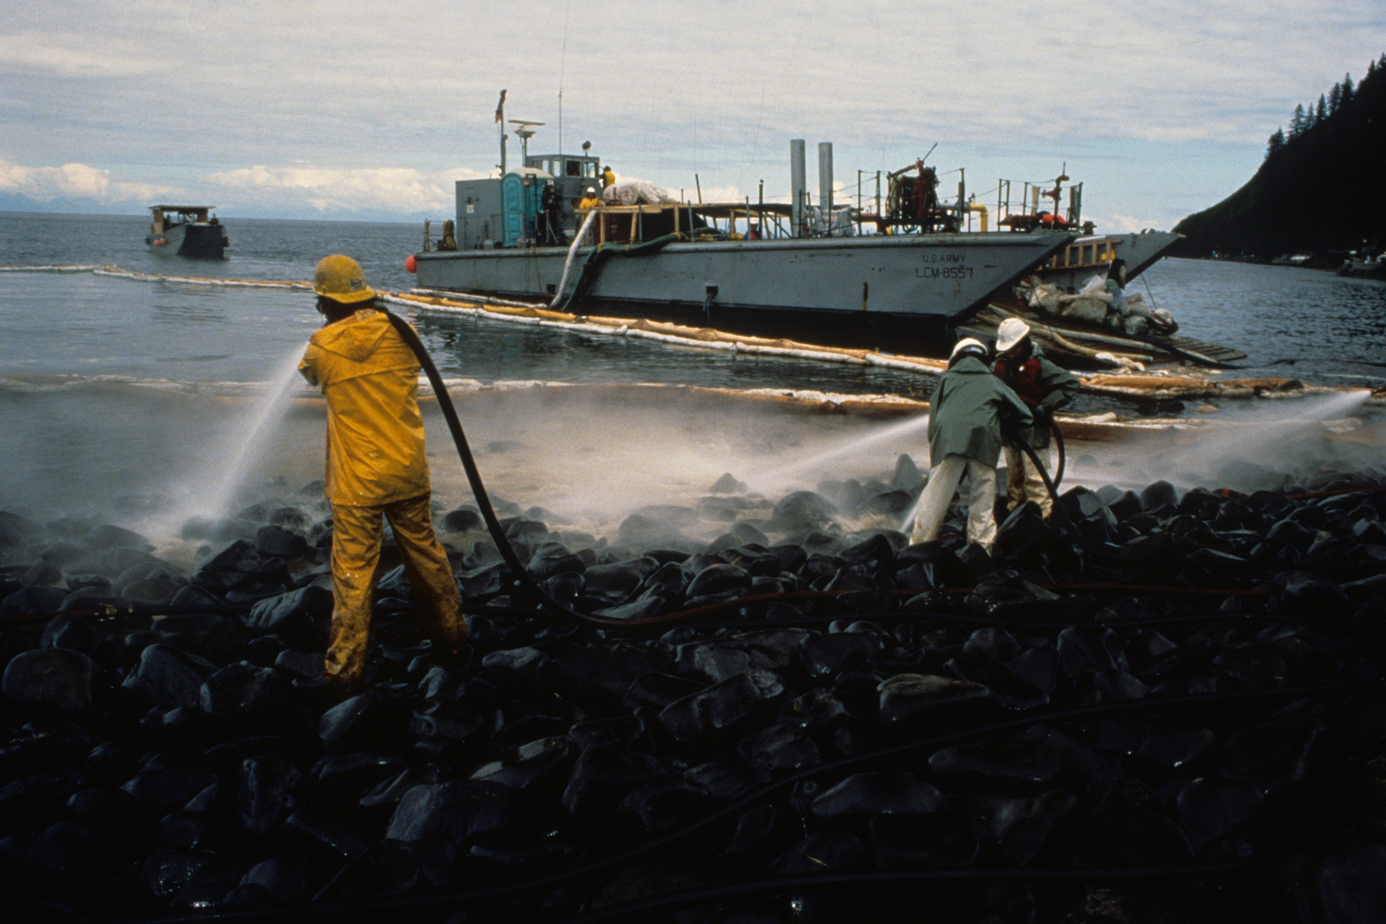 exxon valdez oil spill thesis The oil spill is not over it began long before march 24th and it is still happening it will continue for as long as this country pursues short-sighted energy policies, and for as long as industry is allowed to regulate itself in the extraction and transportation of petroleum.